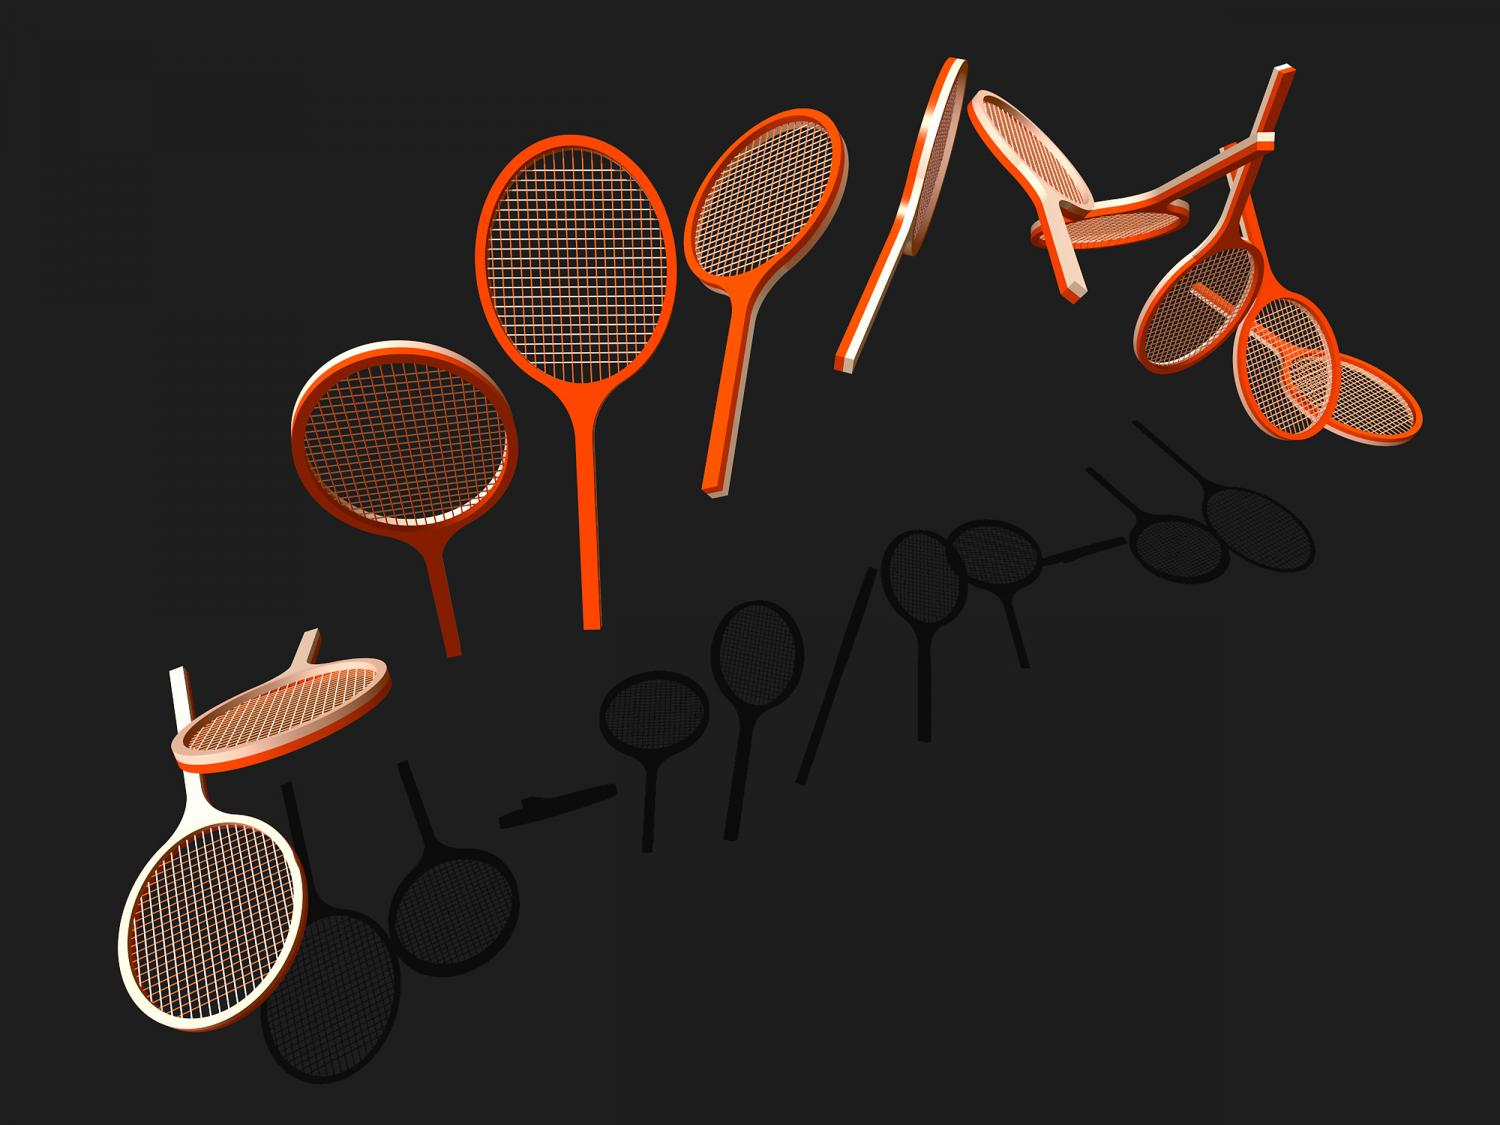 Into the quantum world with a tennis racket